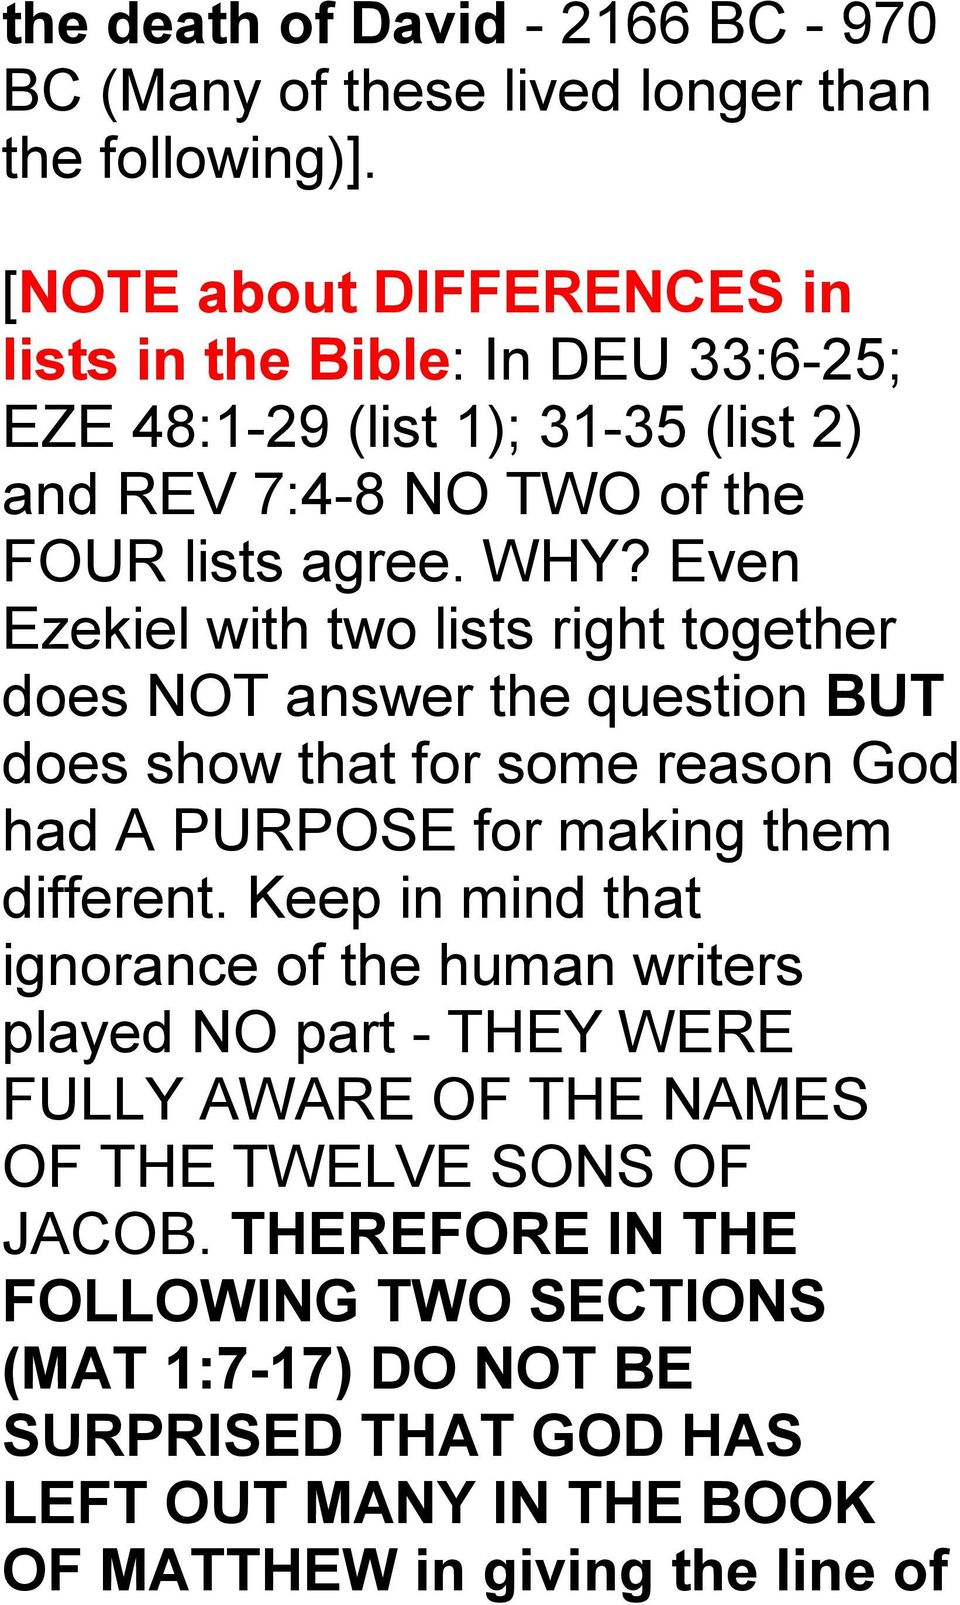 Even Ezekiel with two lists right together does NOT answer the question BUT does show that for some reason God had A PURPOSE for making them different.